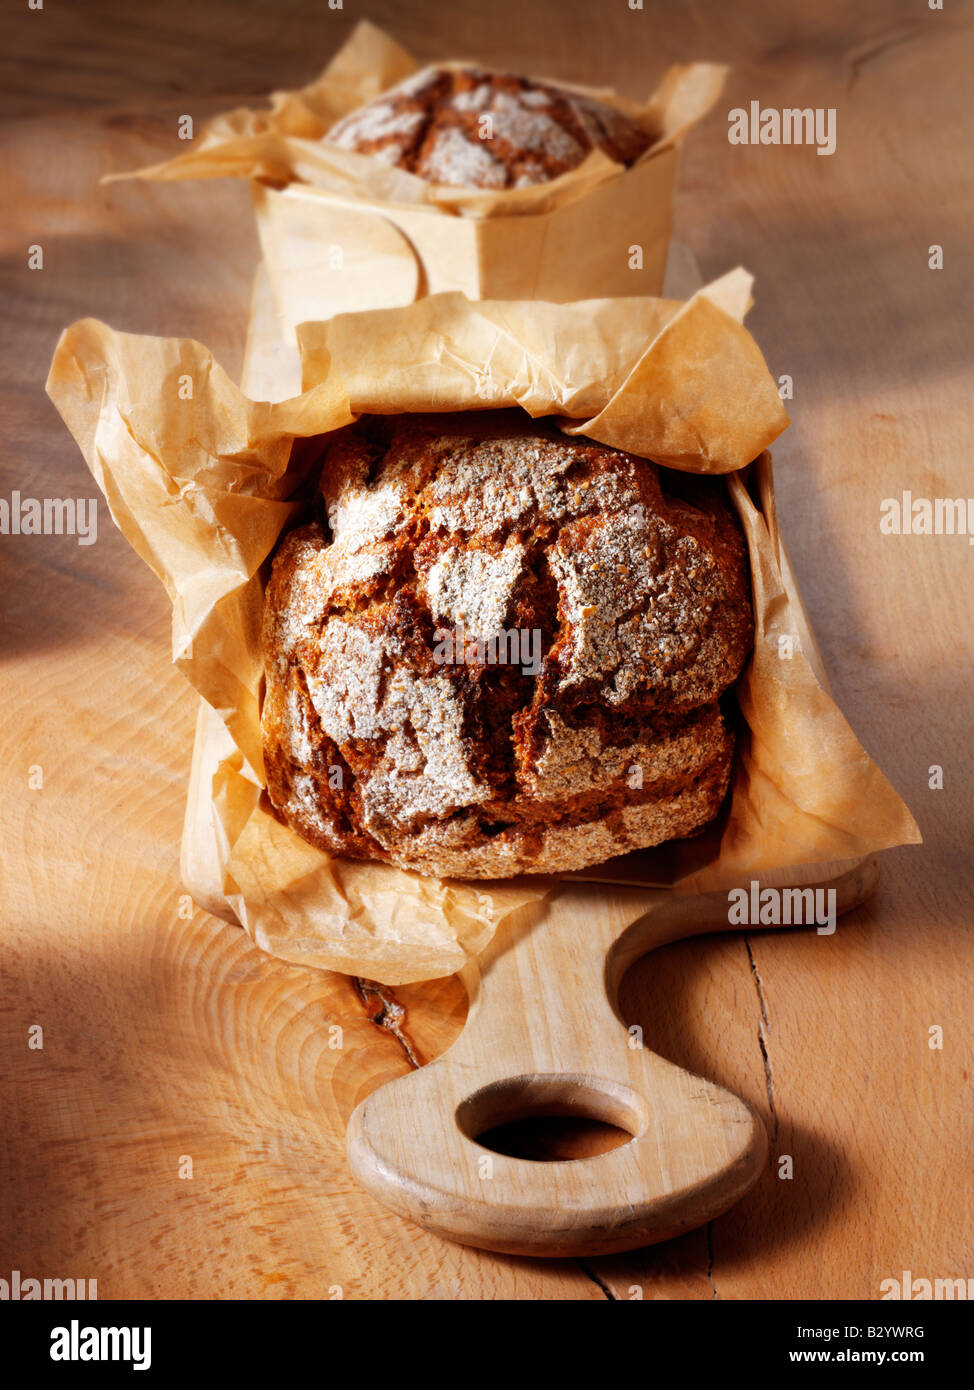 loaves of artisan Deli Rye bread - Stock Image